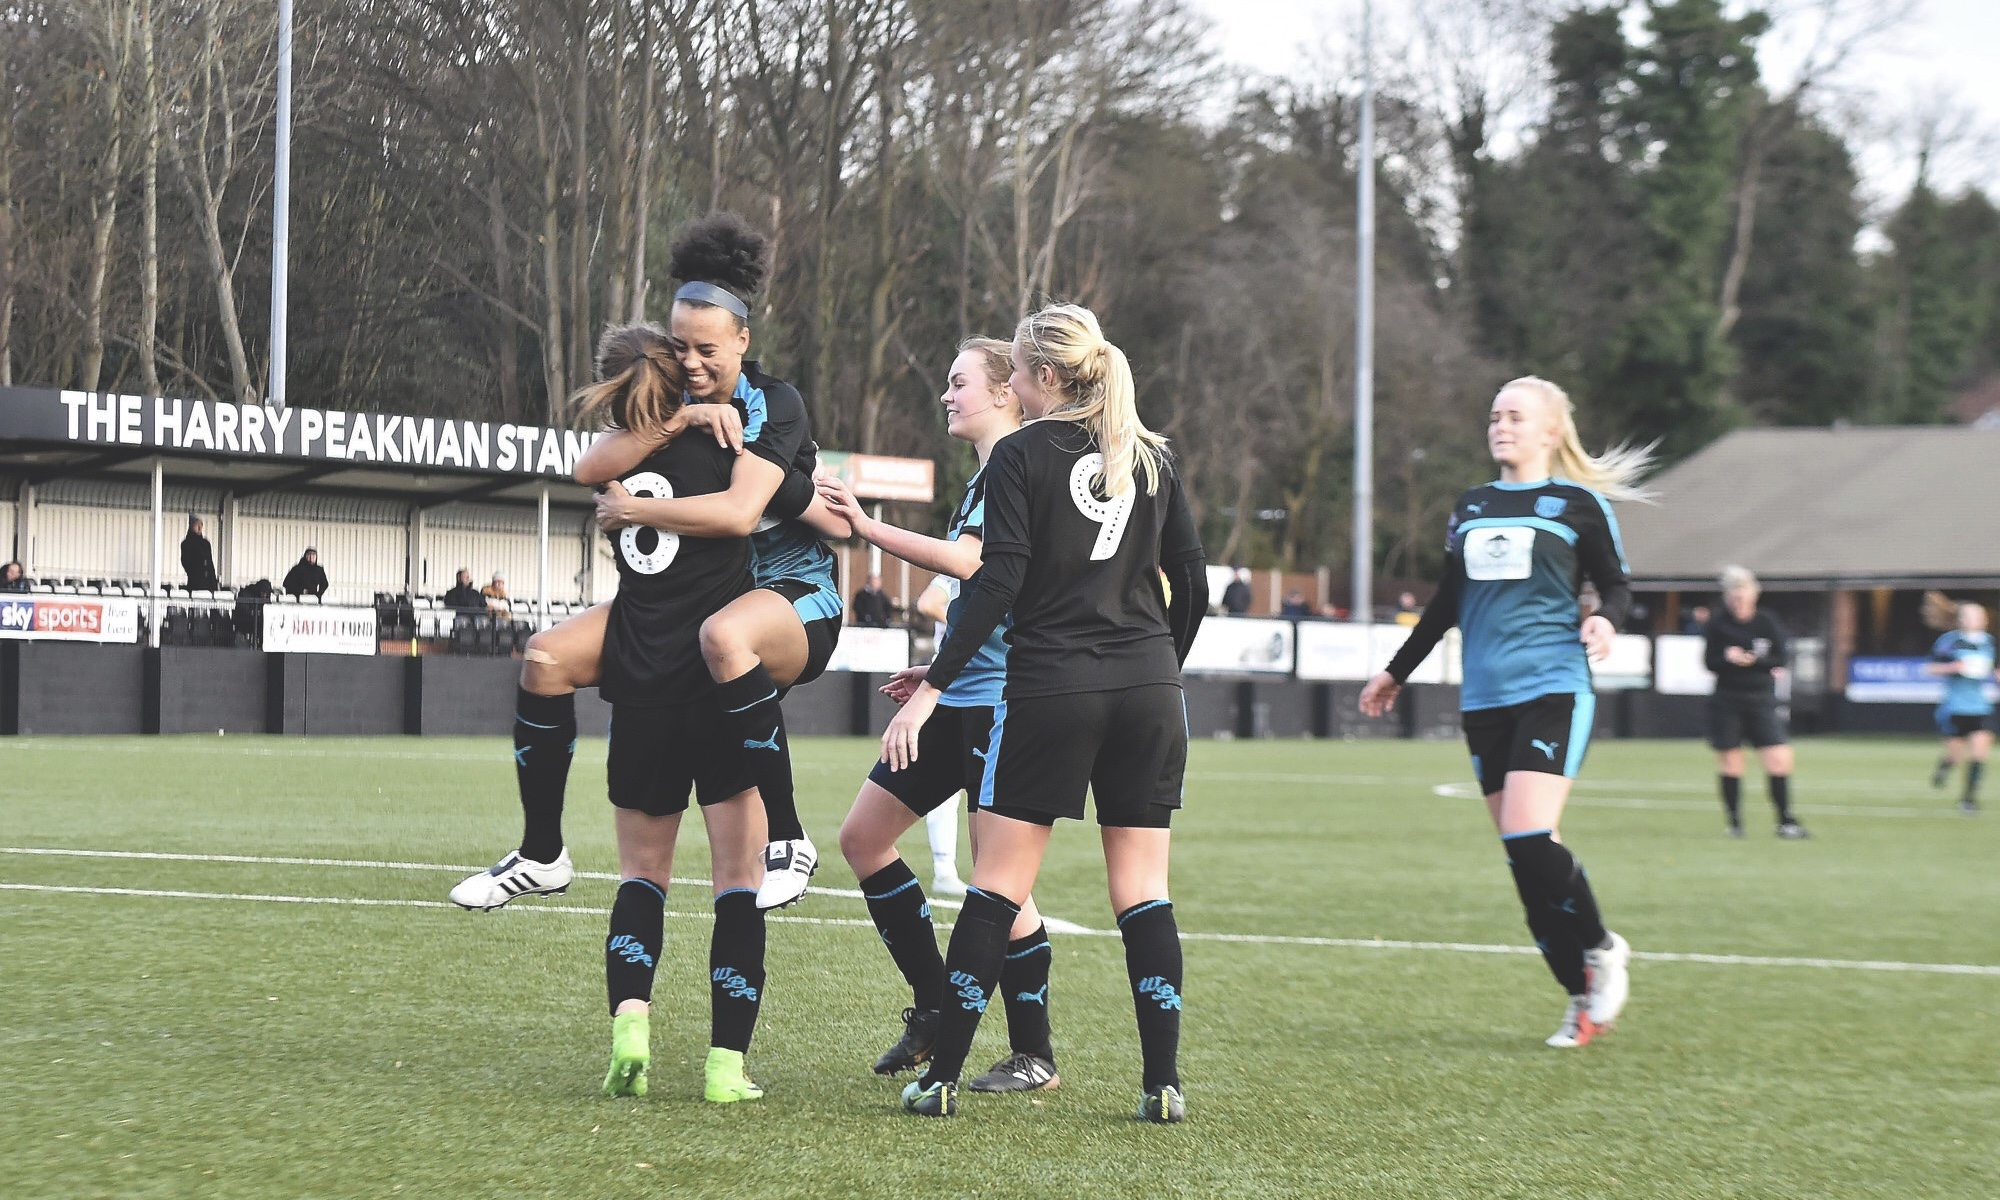 West Bromwich Albion Women celebrating a goal